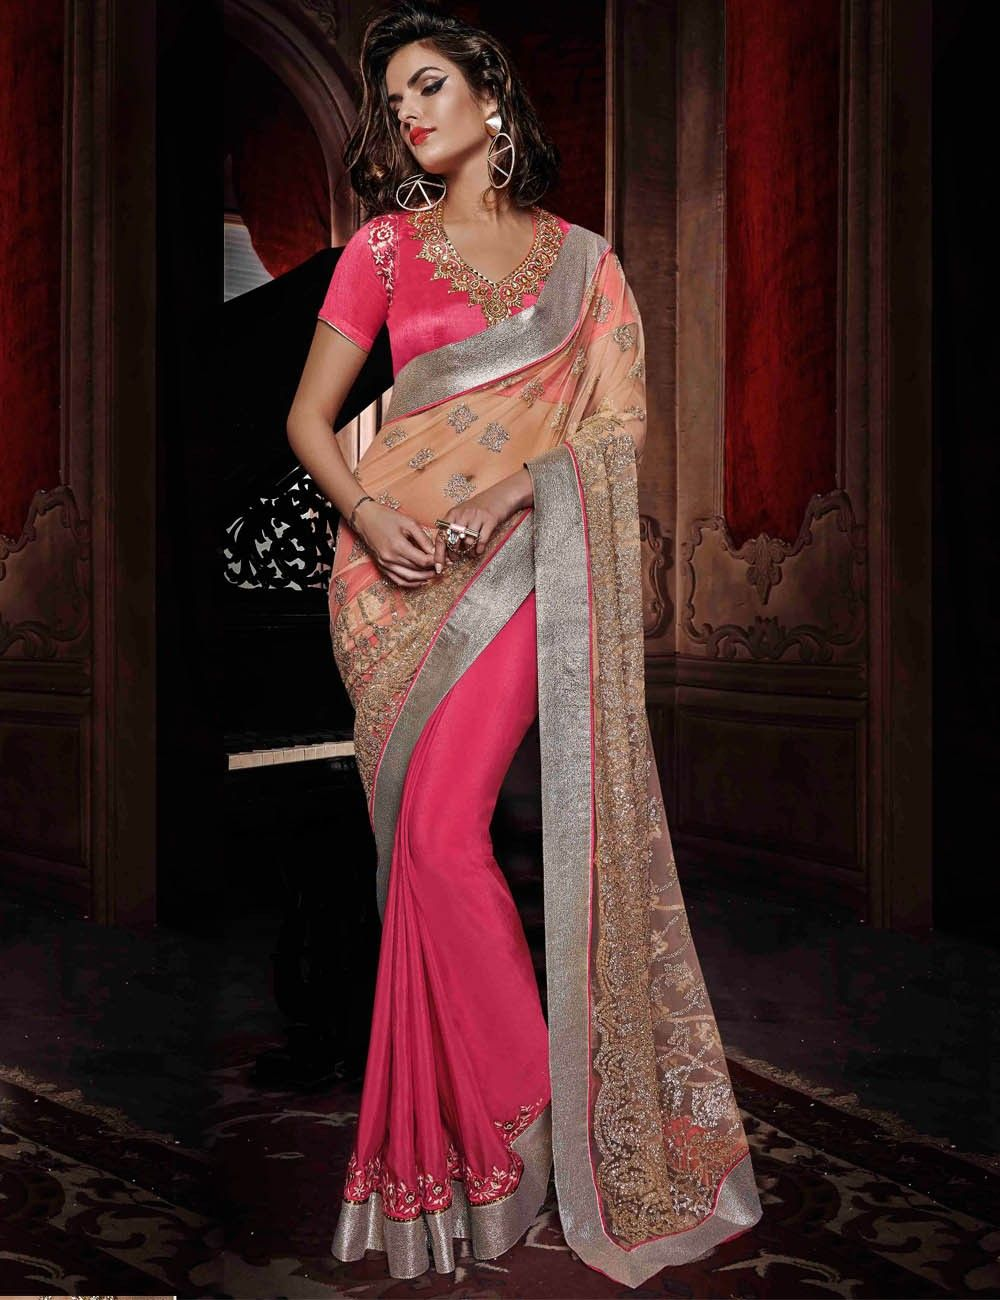 Peach color saree for wedding beige and pink color designer party wear saree  fashion  indian